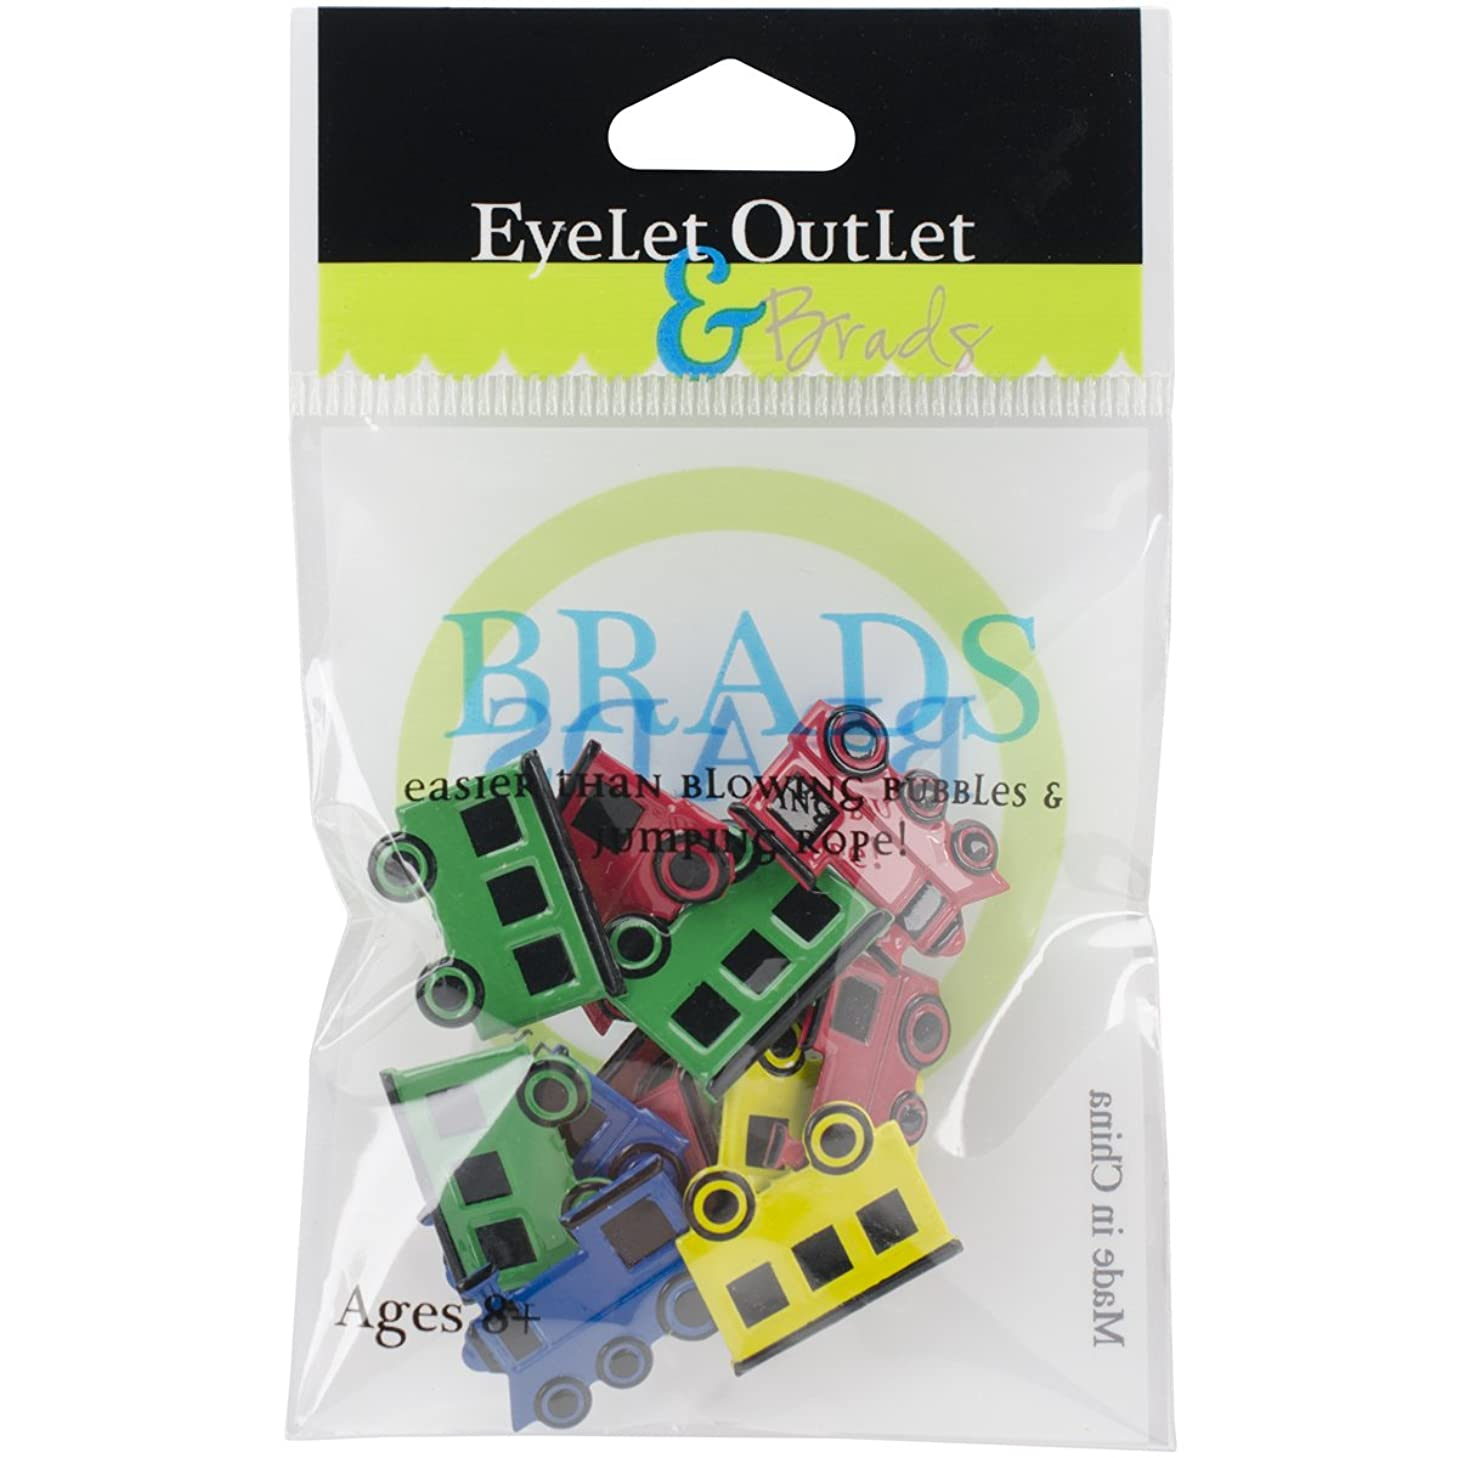 EYELET OUTLET 4 Train Mix Brads